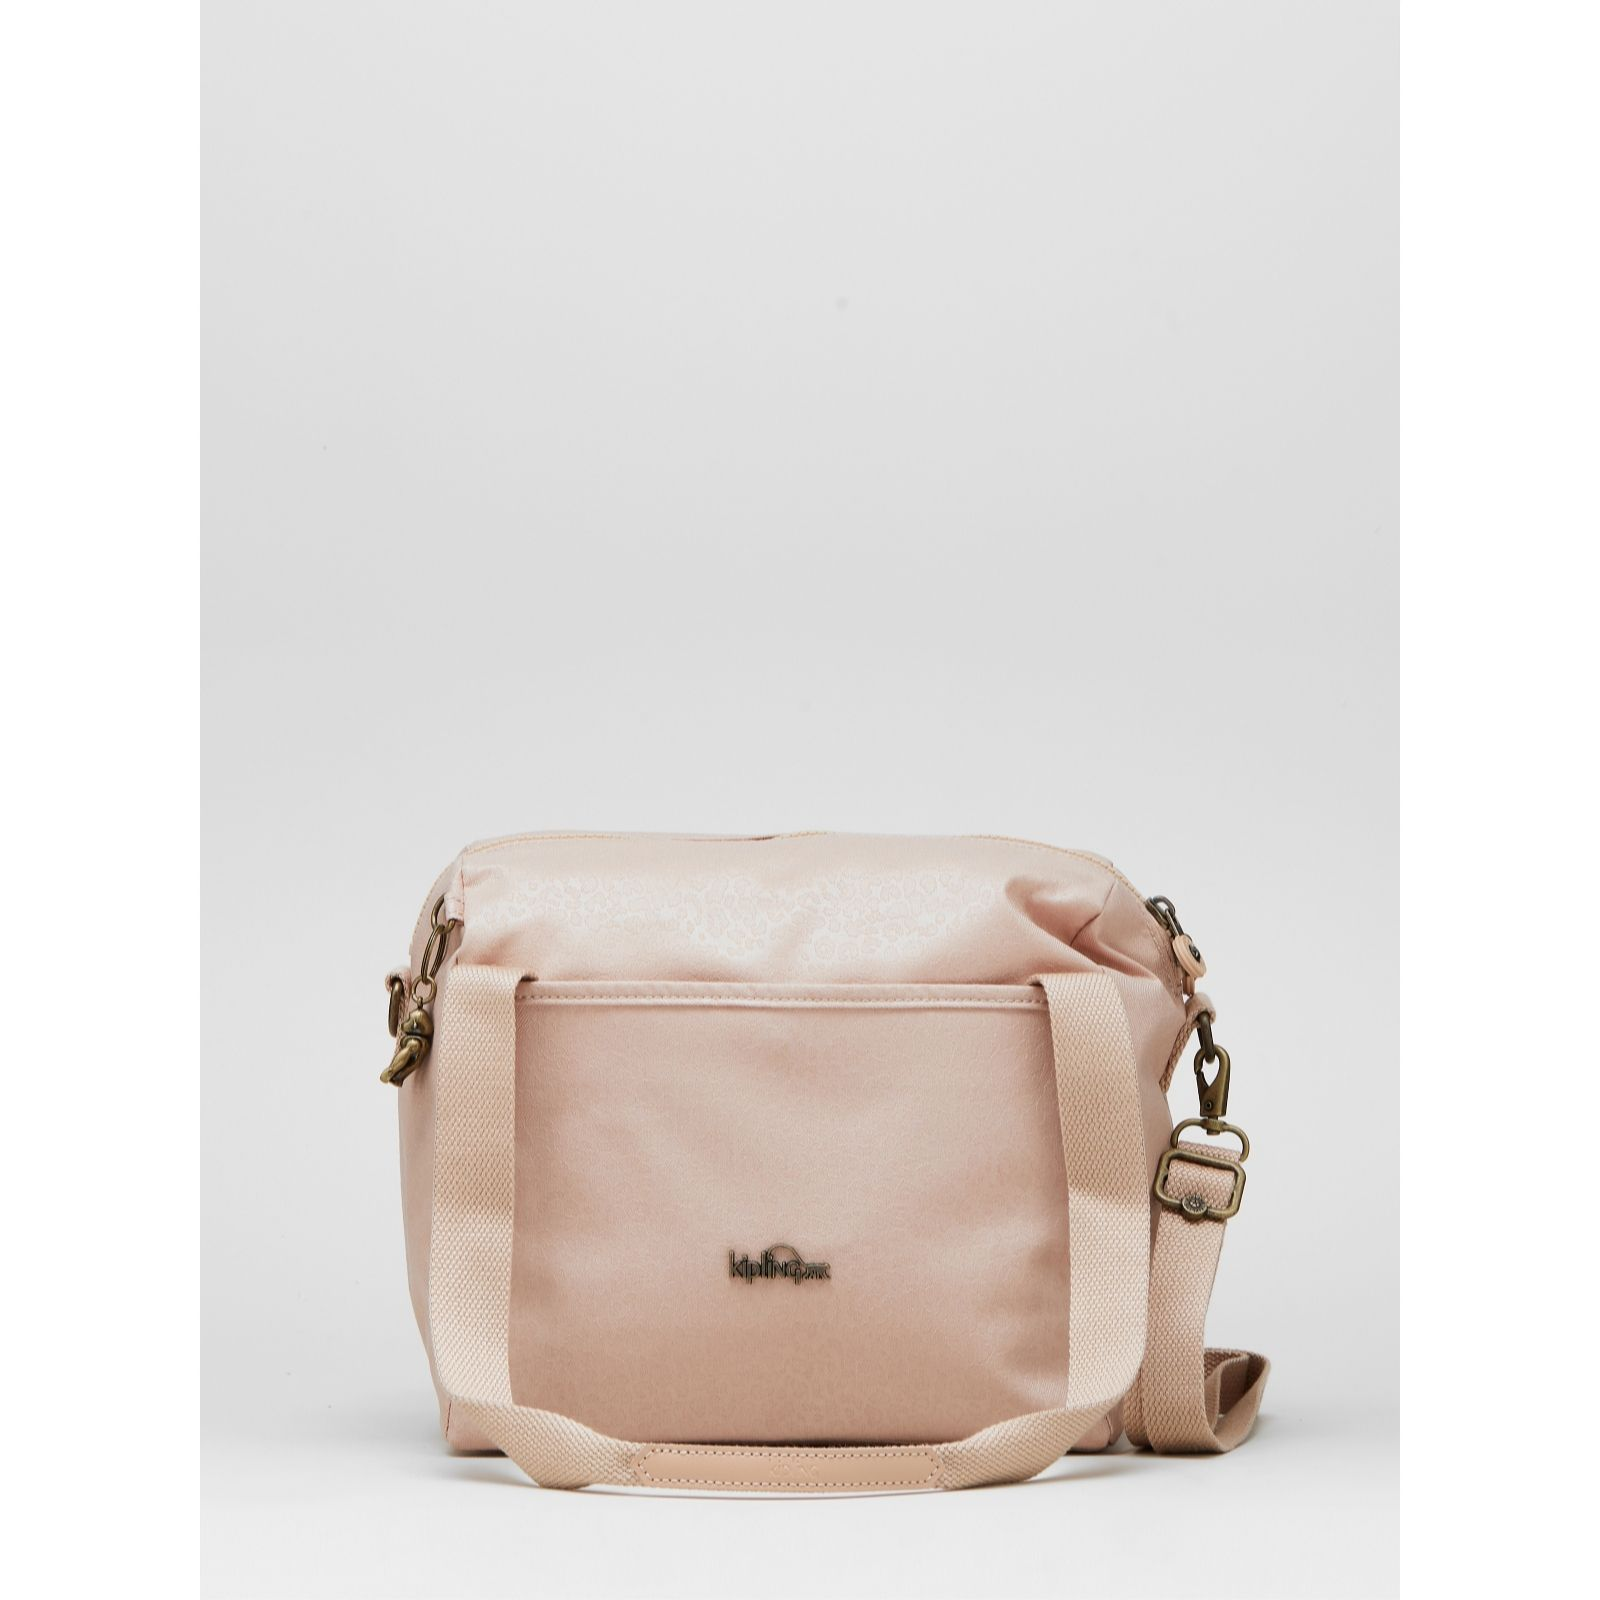 Kipling Eliza Premium Medium Shoulder Bag with Adjustable Strap - QVC UK 7e6232a147c5c